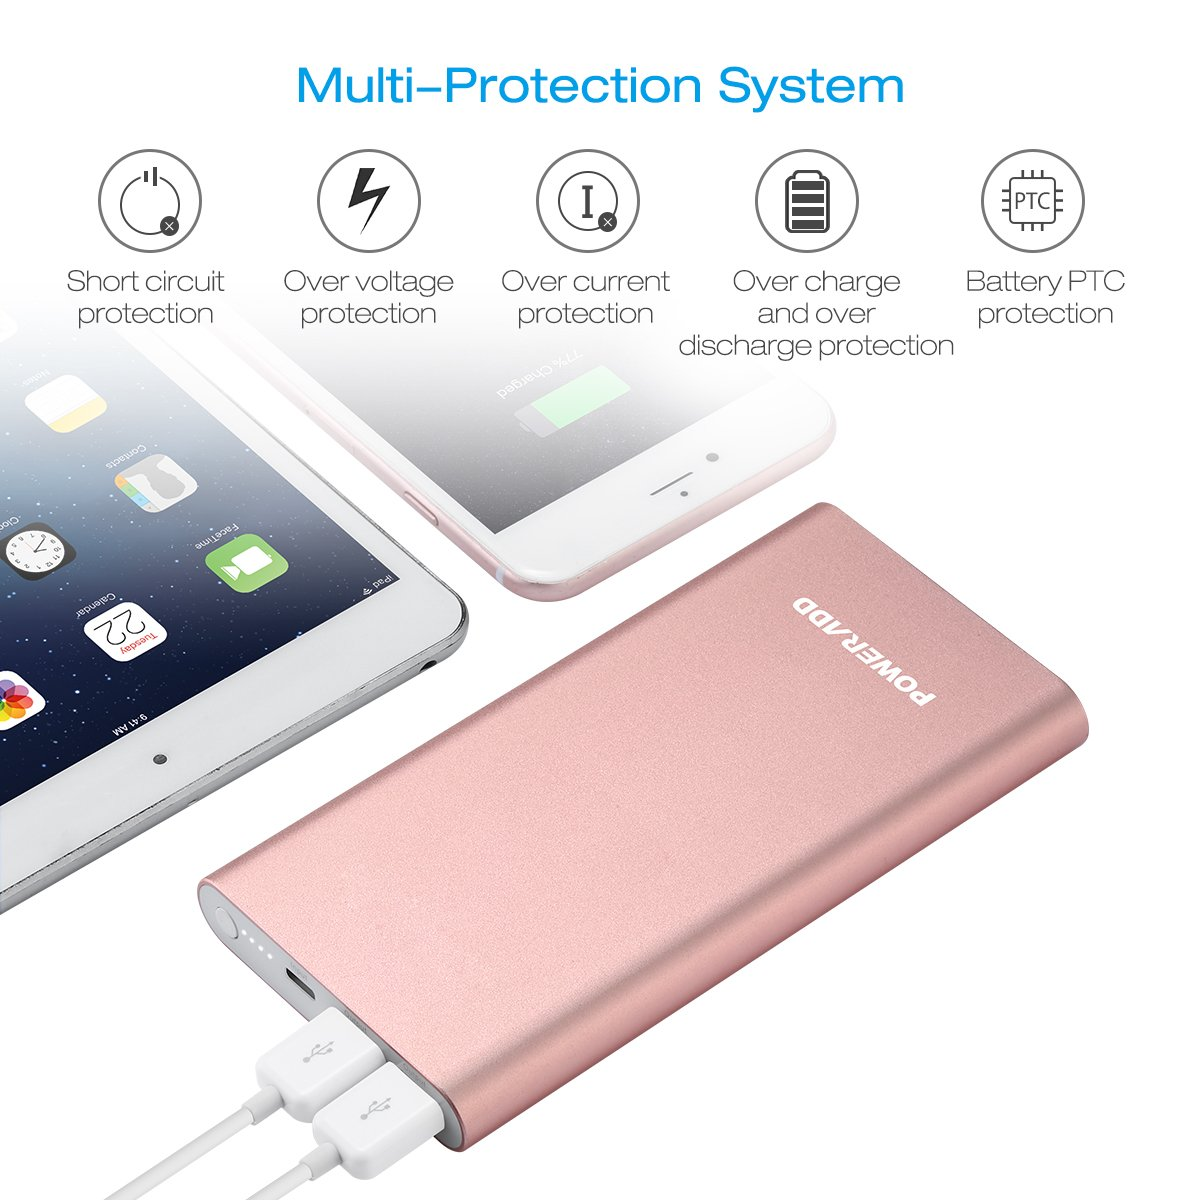 Poweradd Pilot 4gs 12000mah Apple Lightning Portable Power Bank Mobile Phone And Ipod Battery Charger Circuit External With 3a High Speed